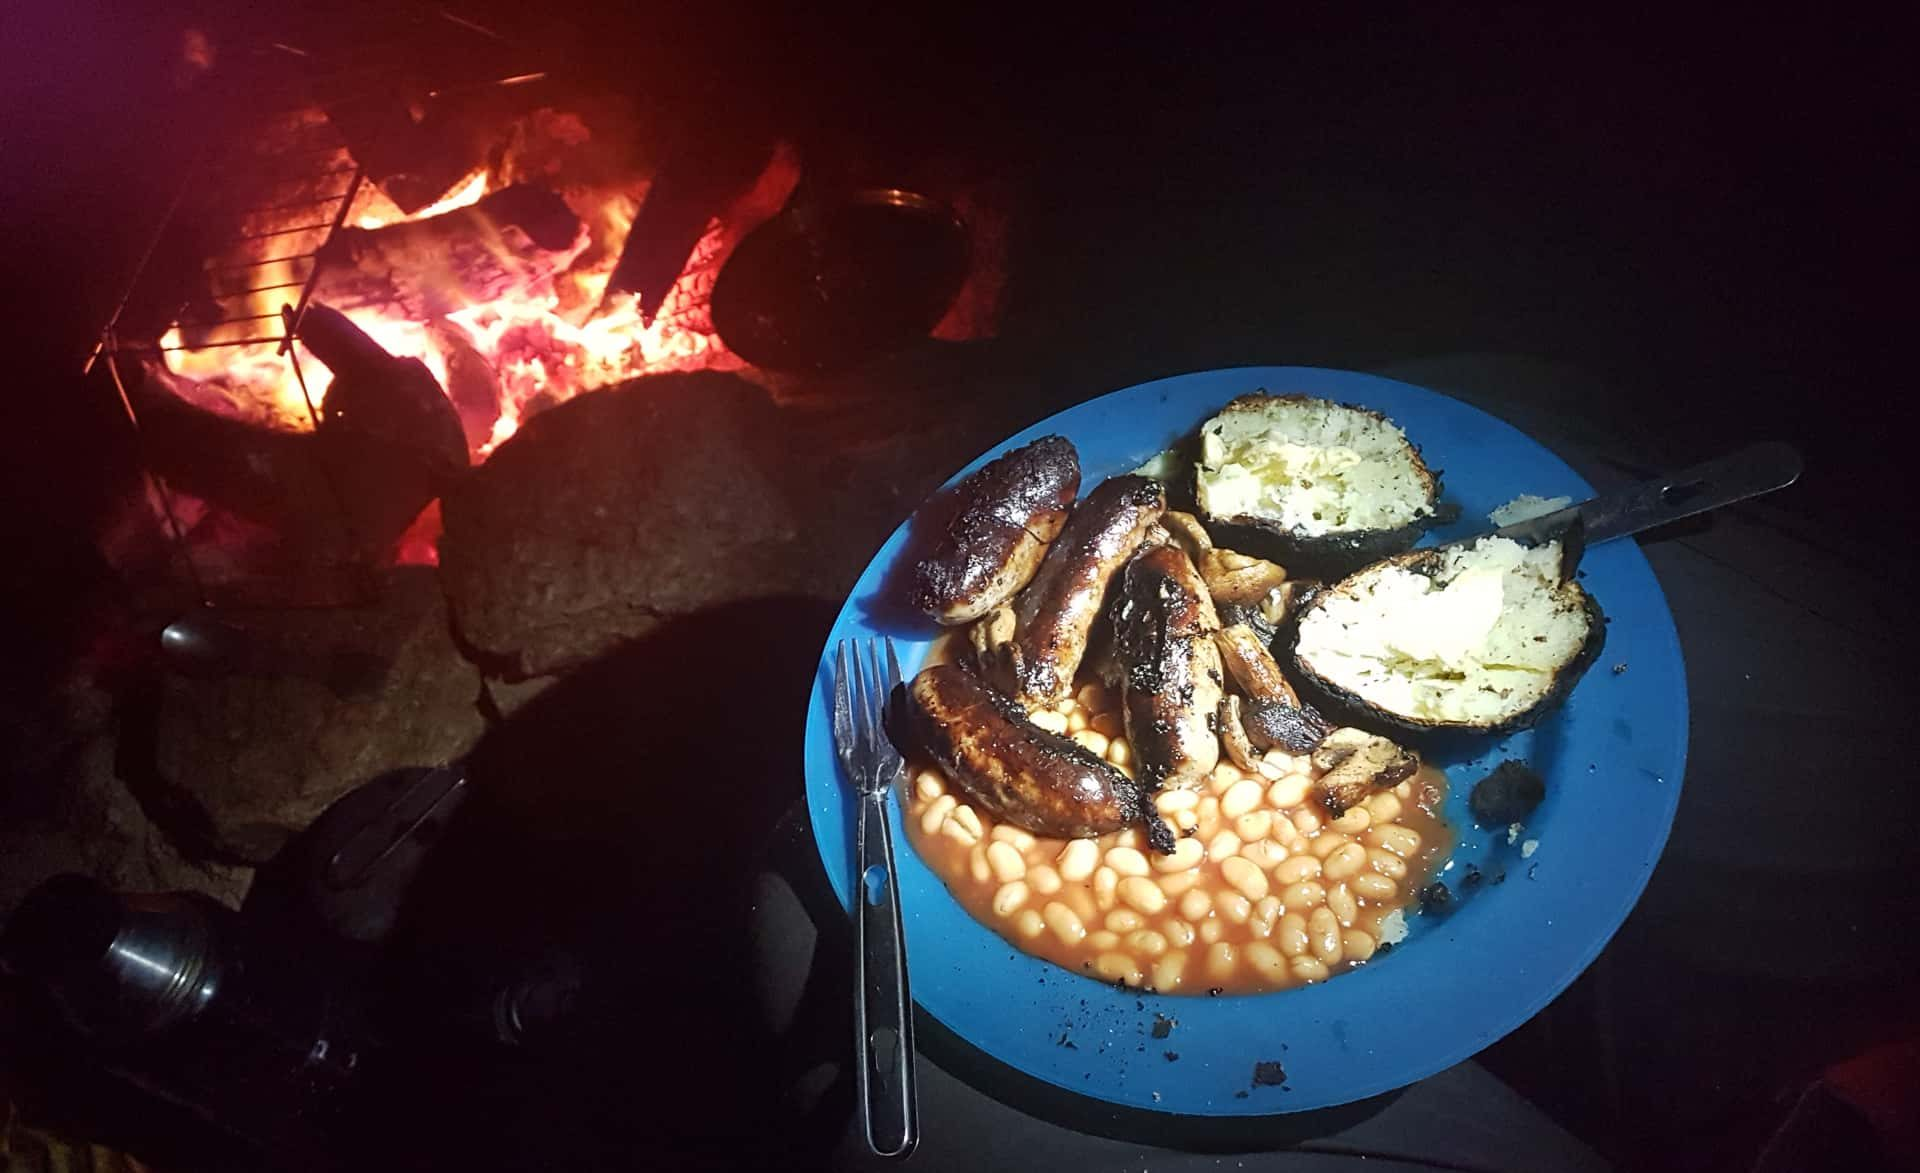 Basic, but most welcome. Sausages, baked potatoes and beans cooked under the stars and over an open campfire on New Year's Day 2019